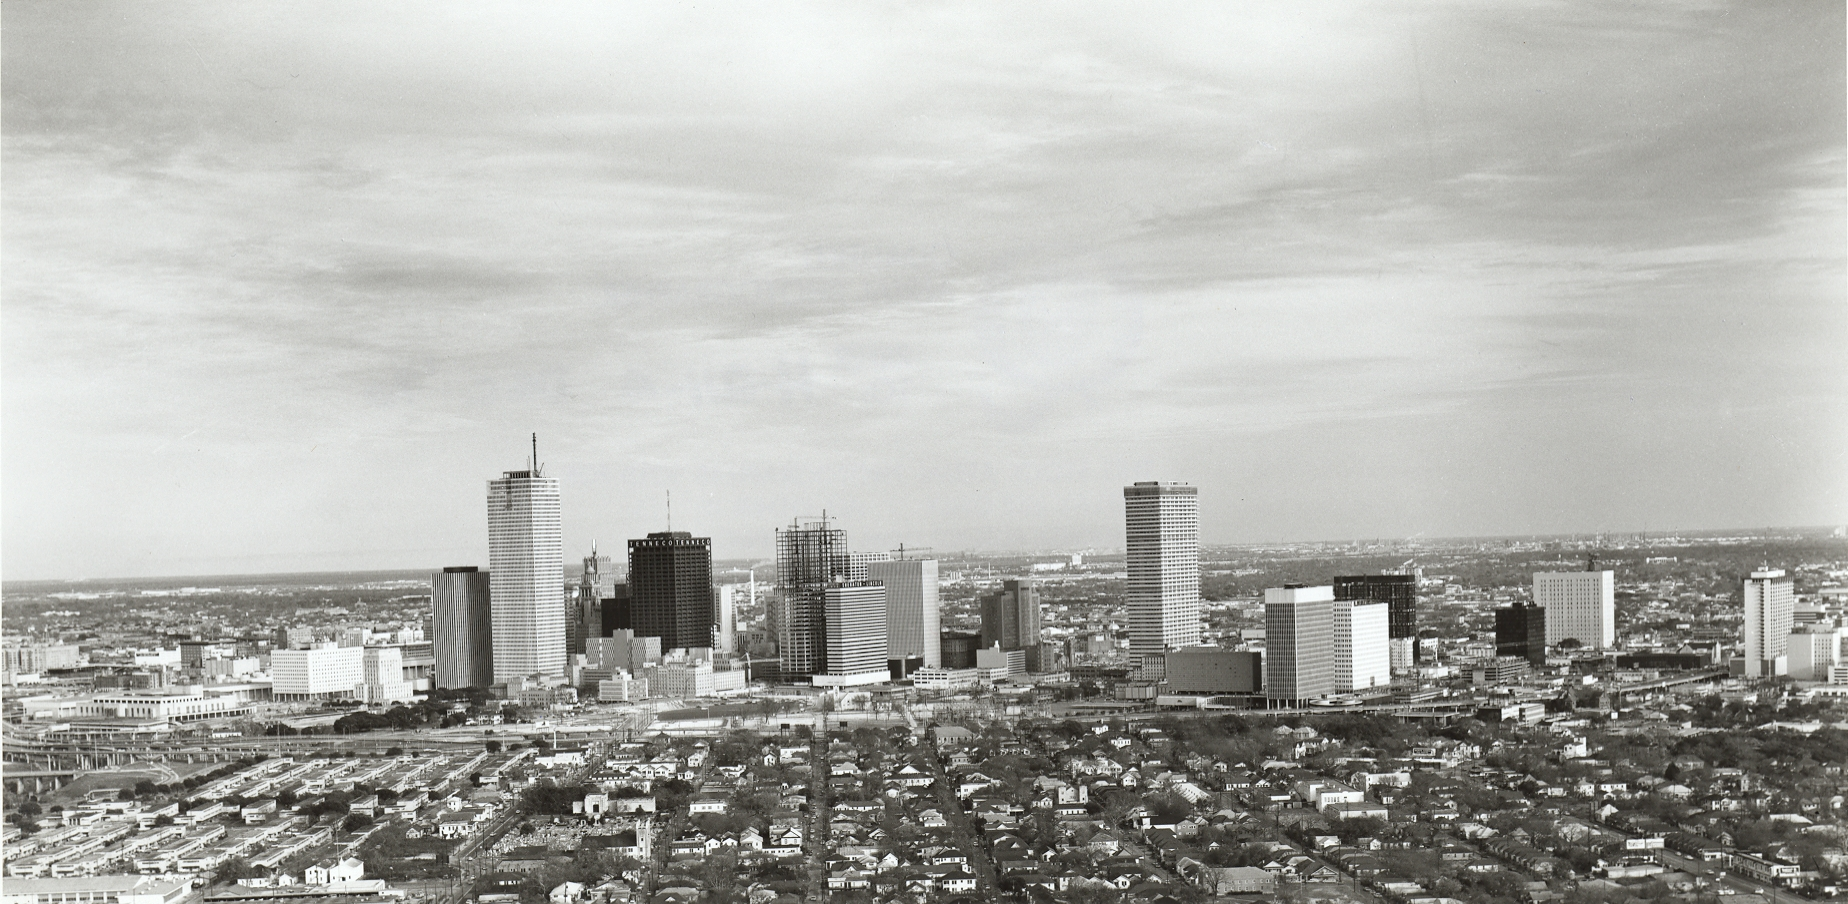 Downtown Houston in the 1970's